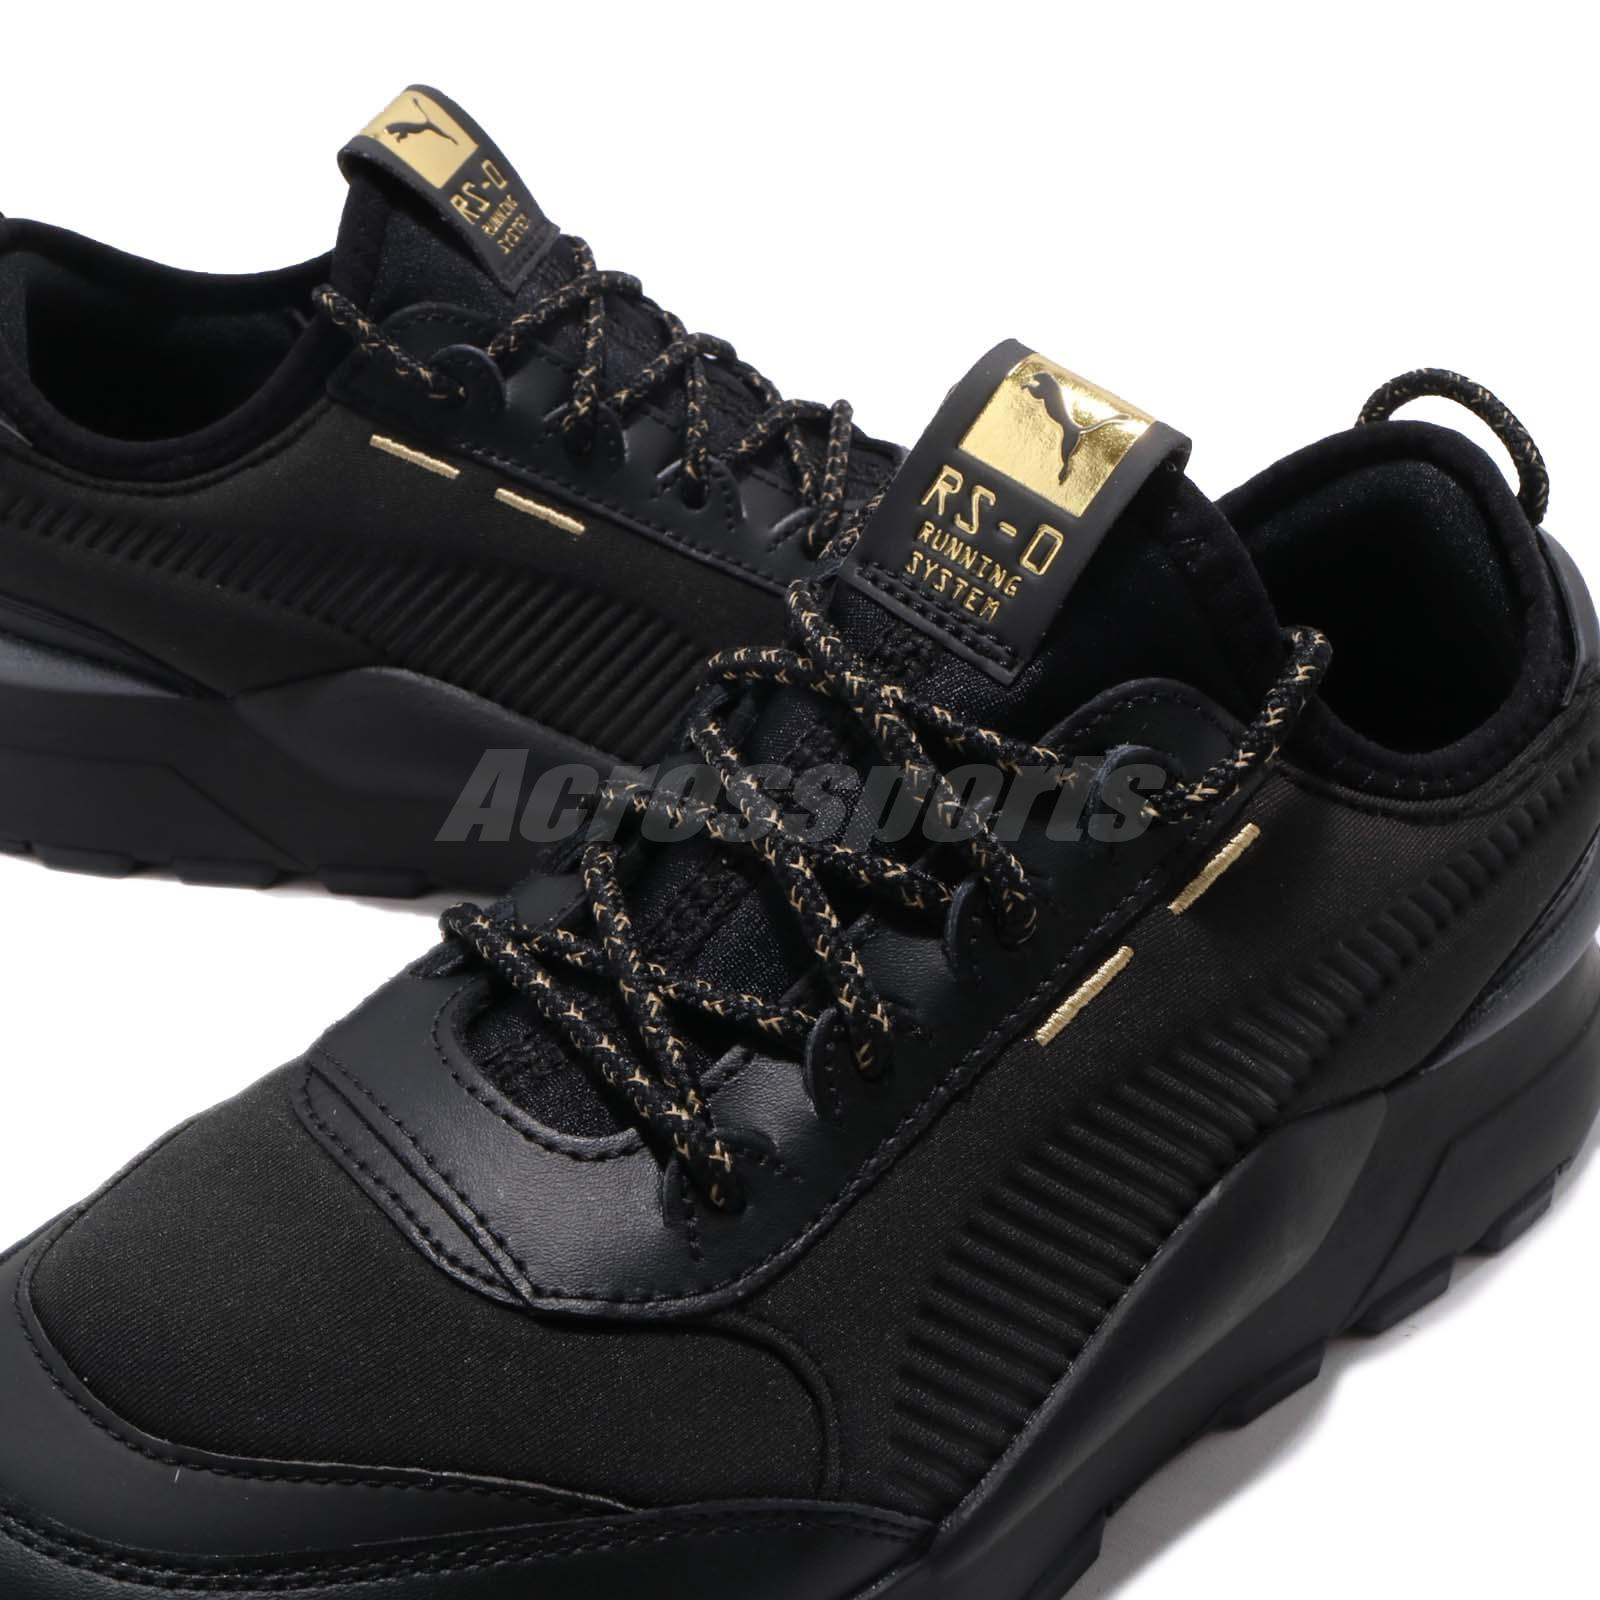 plus récent d07f6 45463 Details about Puma RS-0 Trophy JR Running System Black Gold Kid Junior  Women Shoes 369033-01